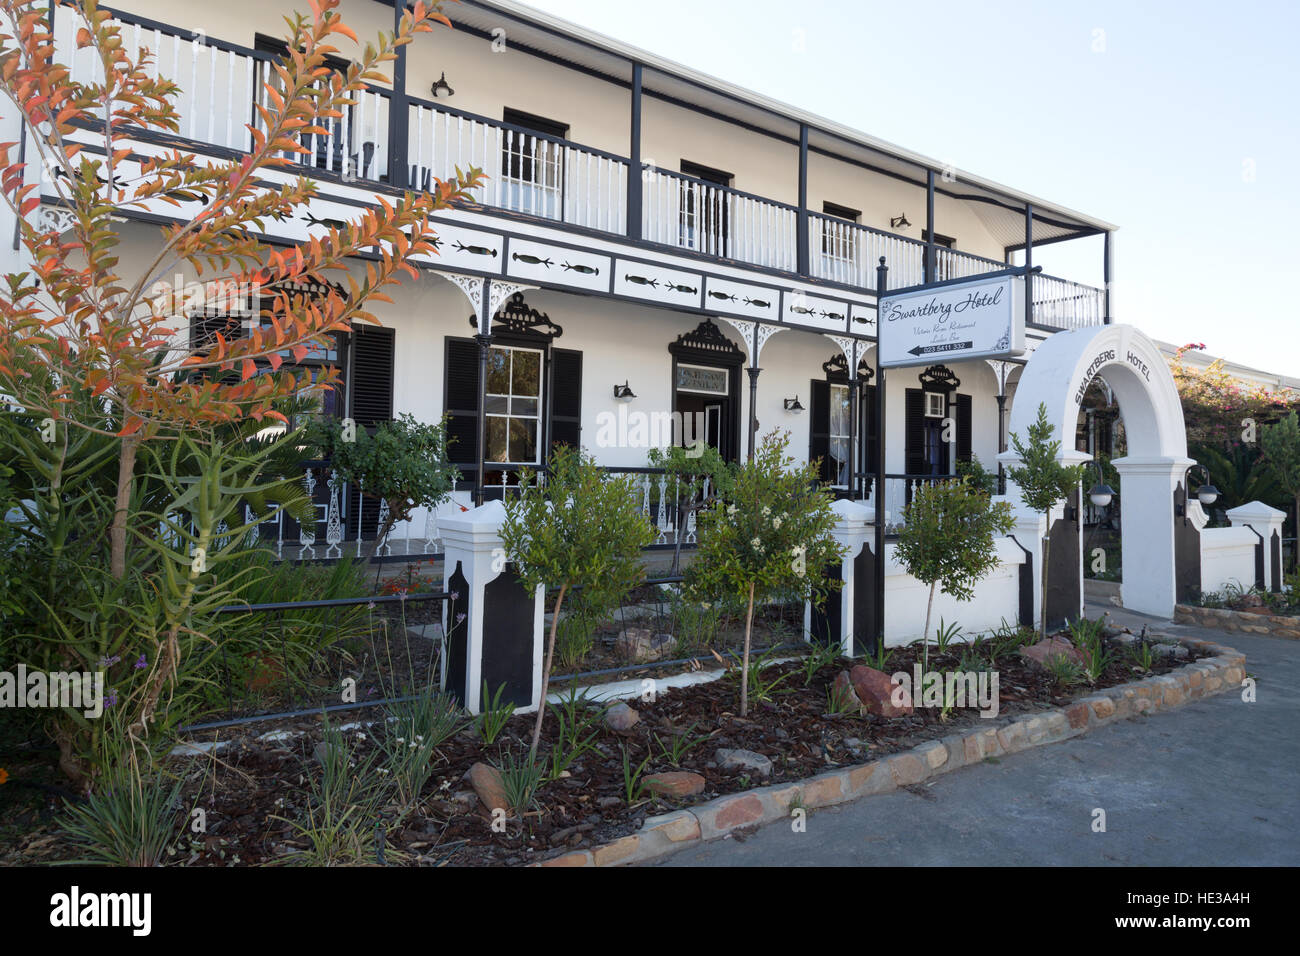 The Swartberg Hotel, Prince Albert, the Karoo, South Africa - Stock Image